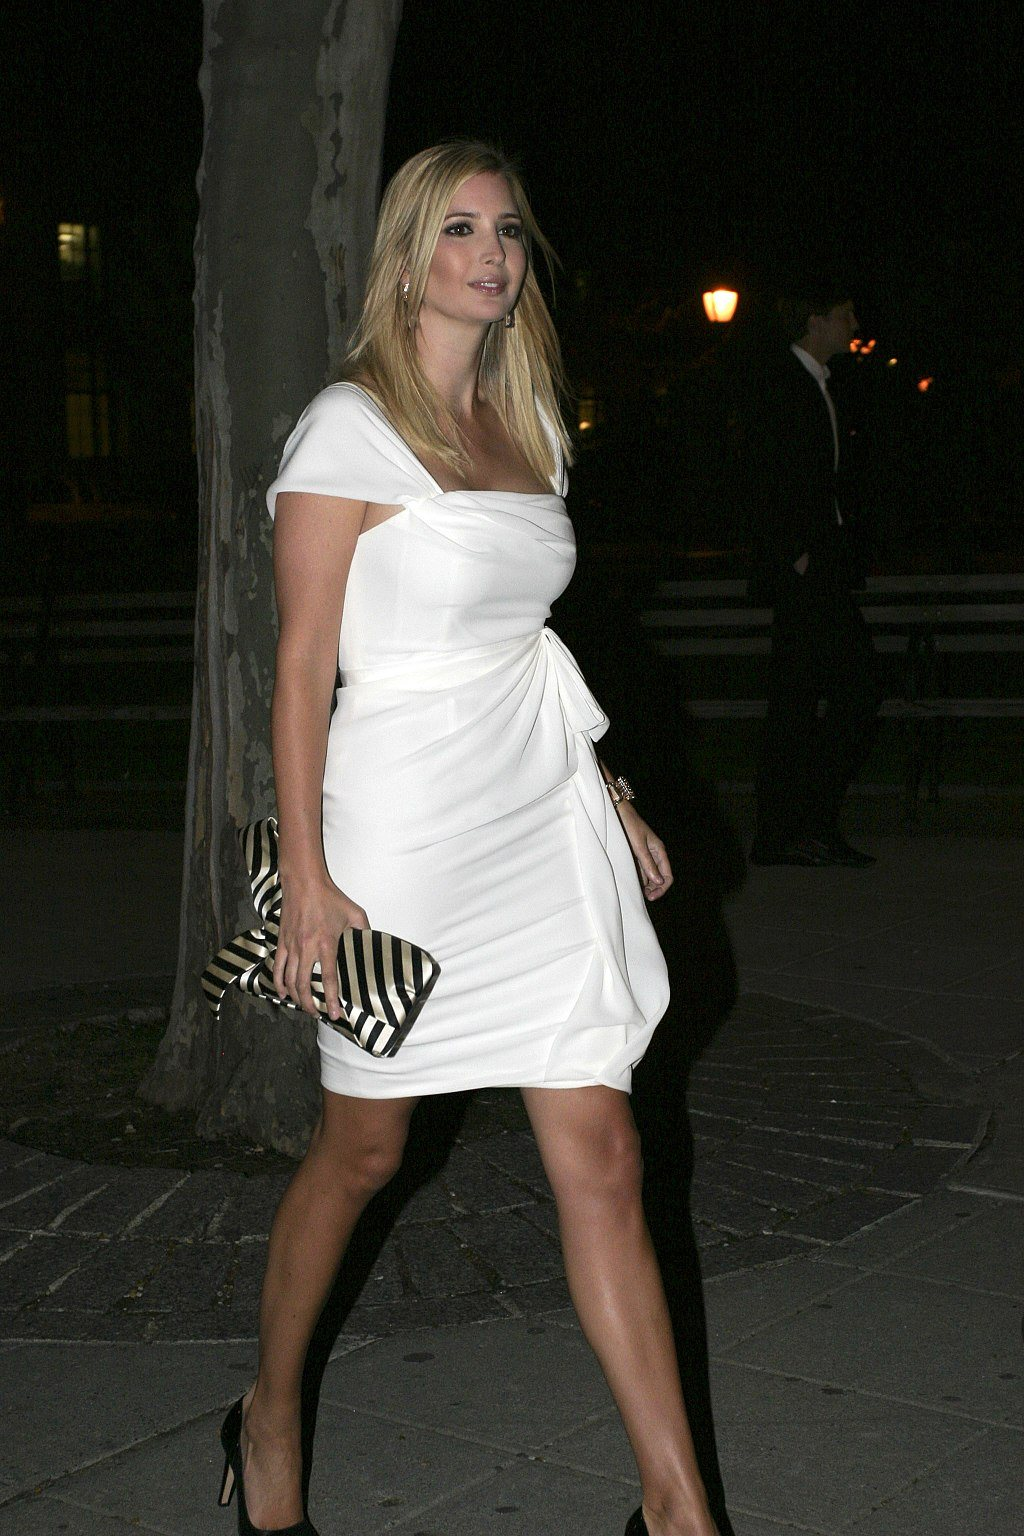 Eastern European decent, tall, blonde, sultry, well endowed, long legged beauty Ivanka Trump